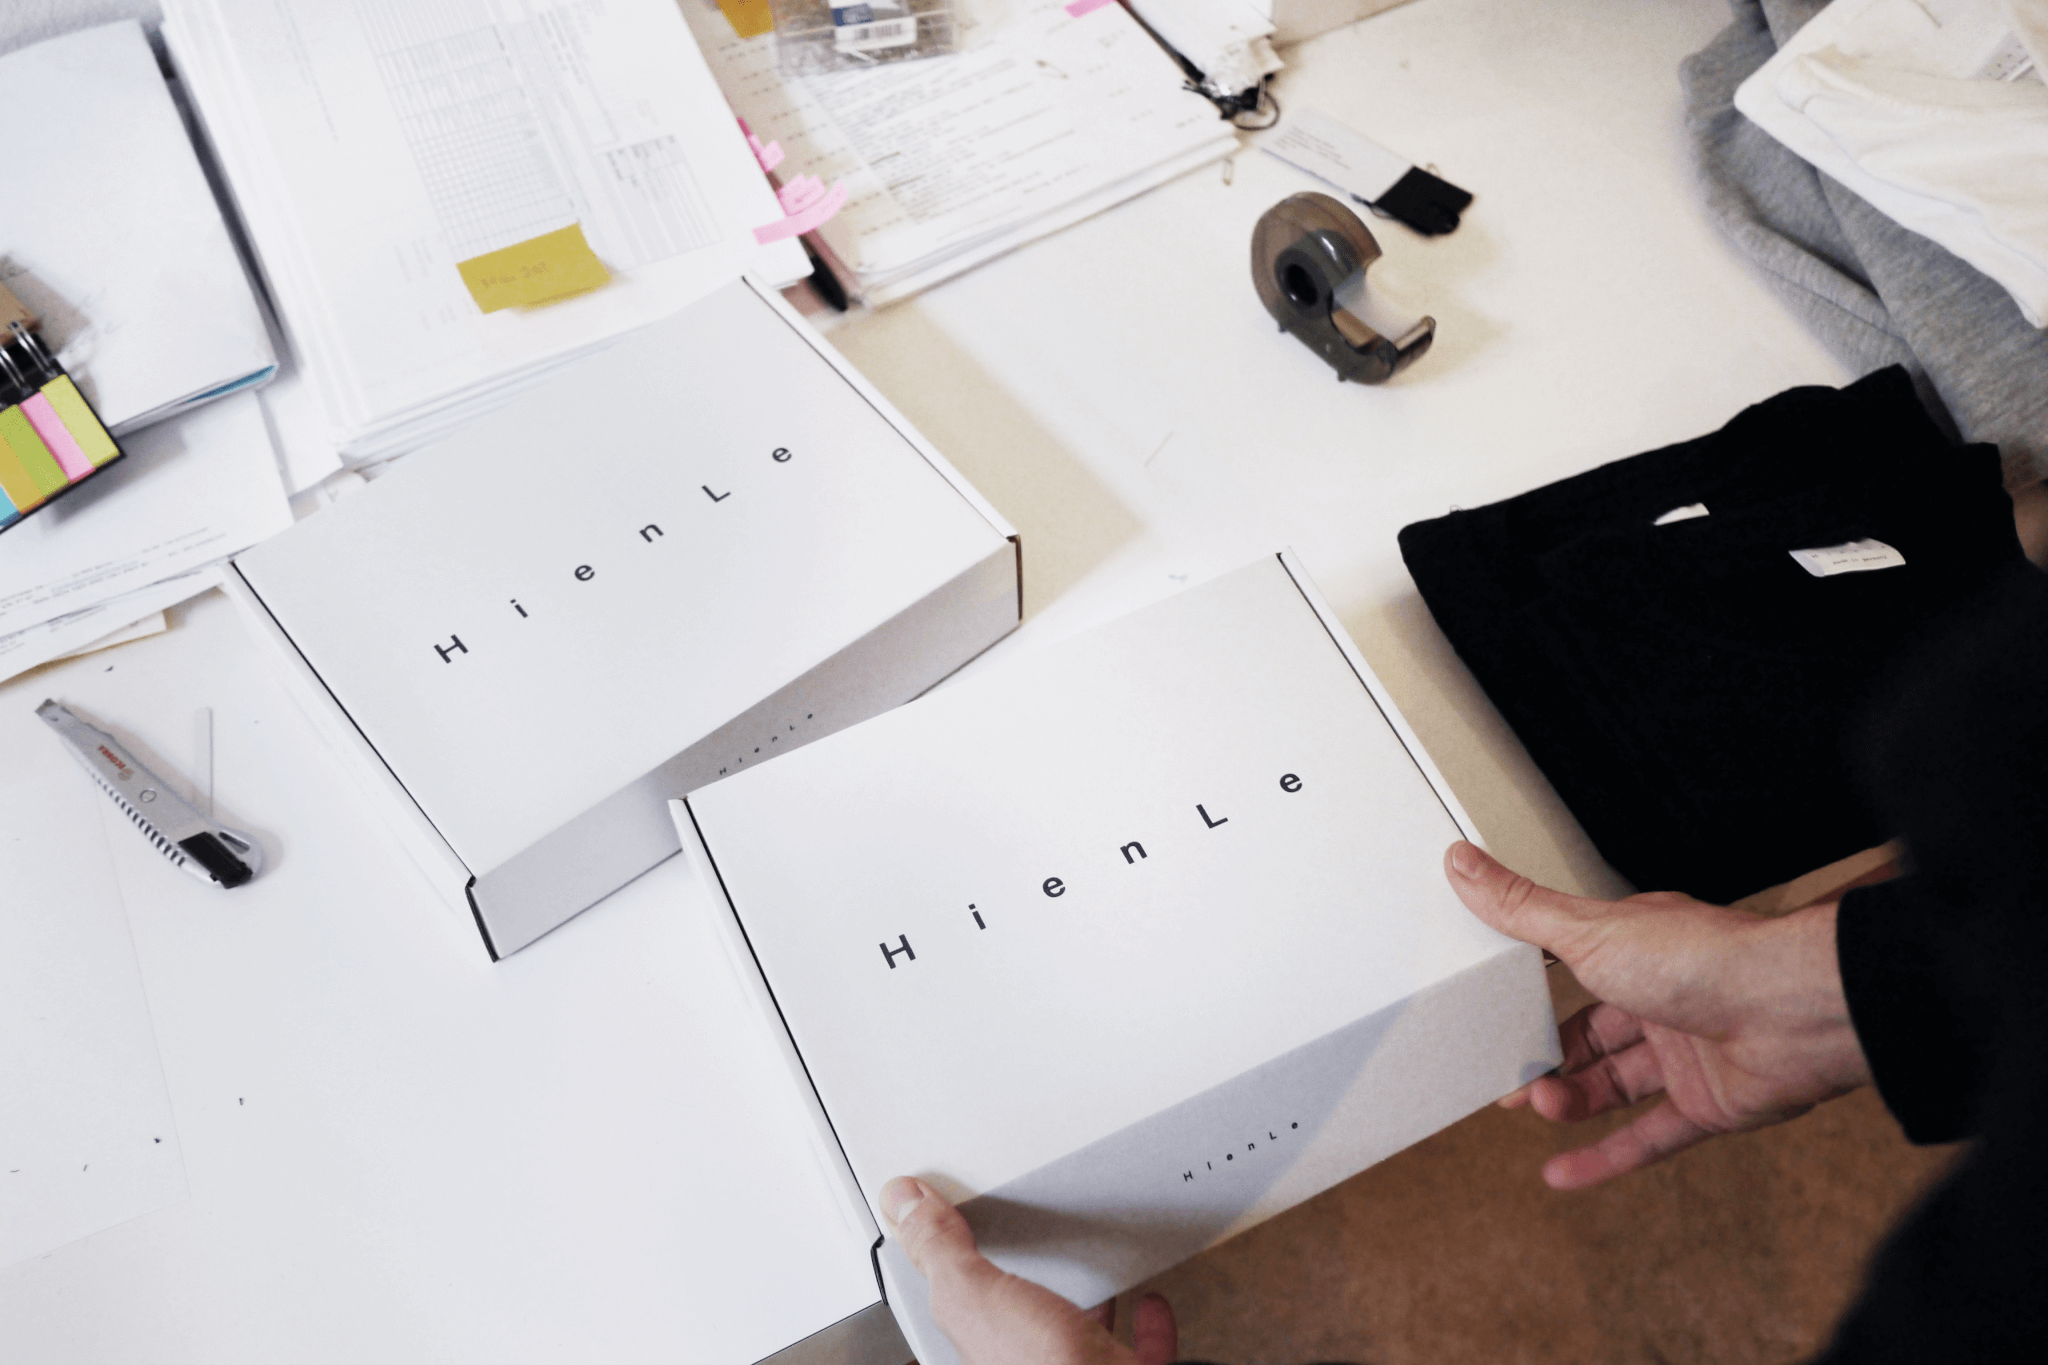 Hien Le Packaging